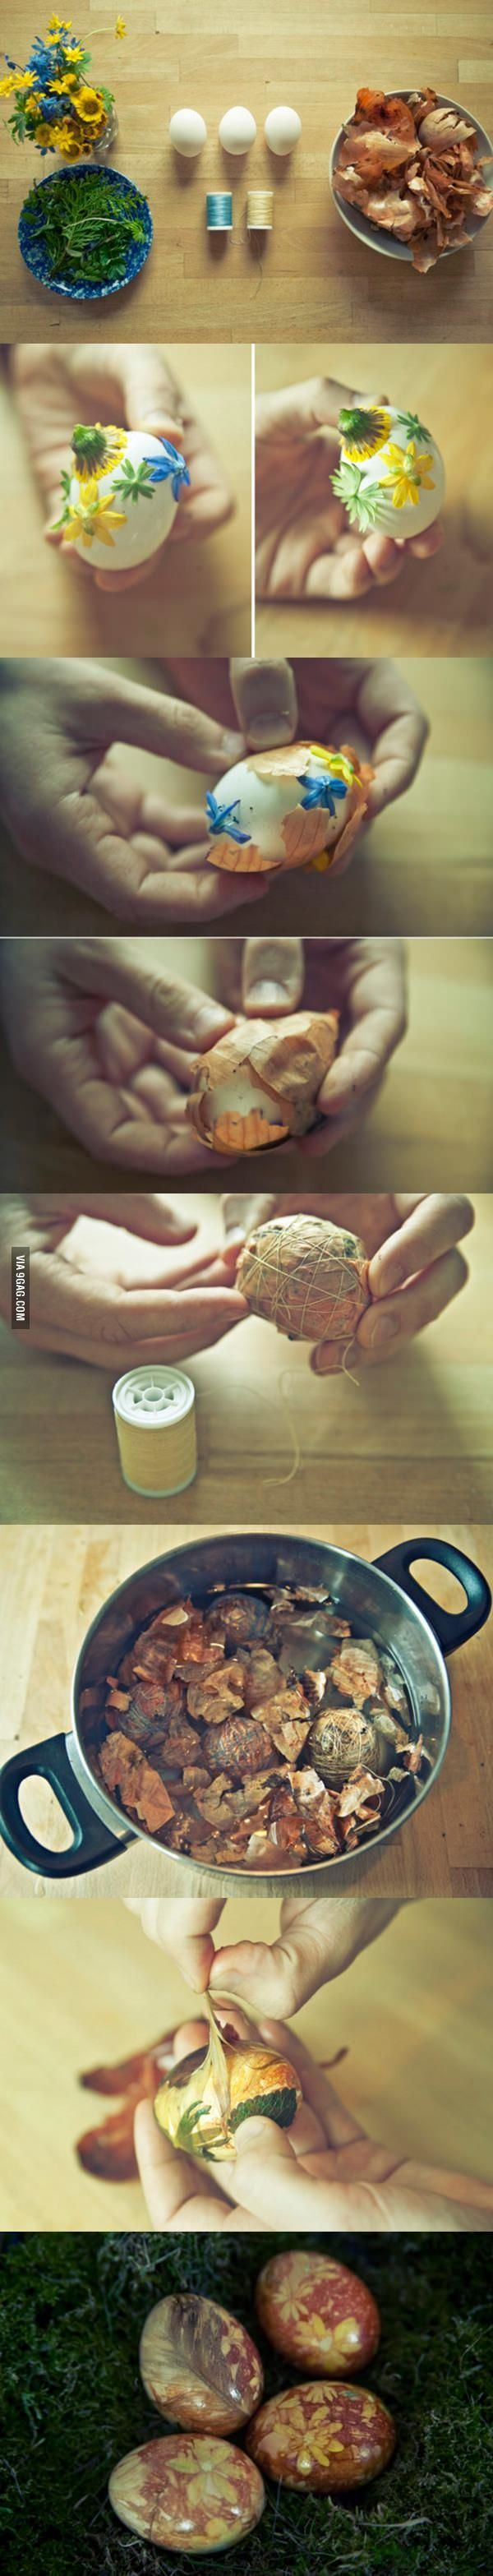 Dying eggs with onion skins - WARNING: Eggshells are porous, so use only non-toxic flowers or blown eggs!